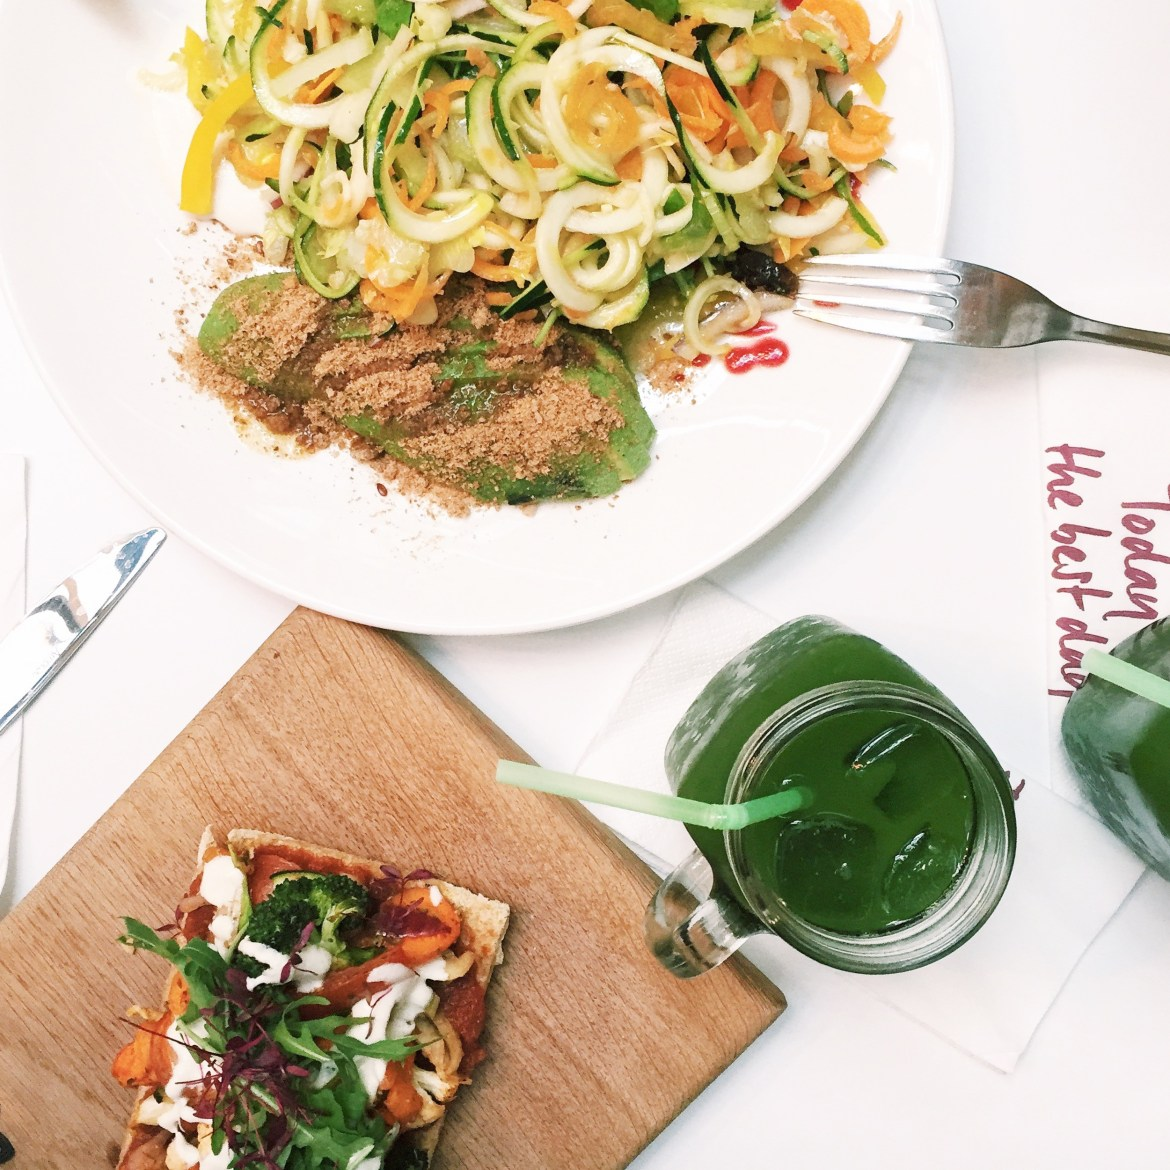 'Pizza' and 'Avocado Salad' for Lunch with Alkaliser Juice.